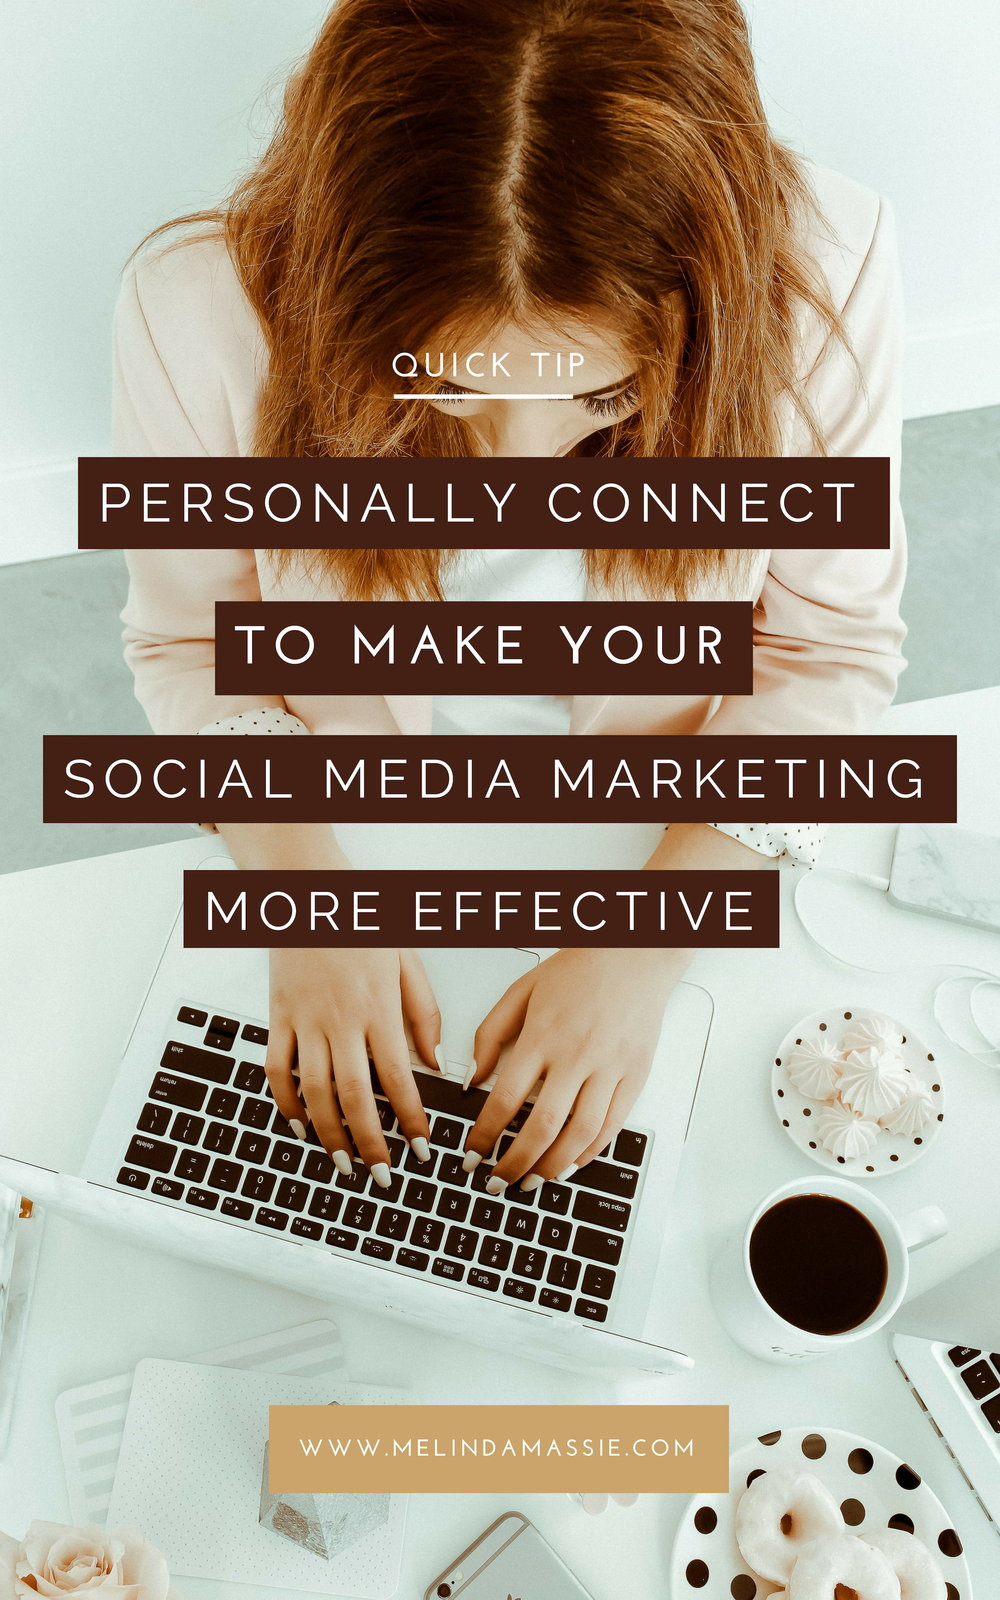 Quick Tip: Personally Connect to Make Your Social Media Marketing More Effective.